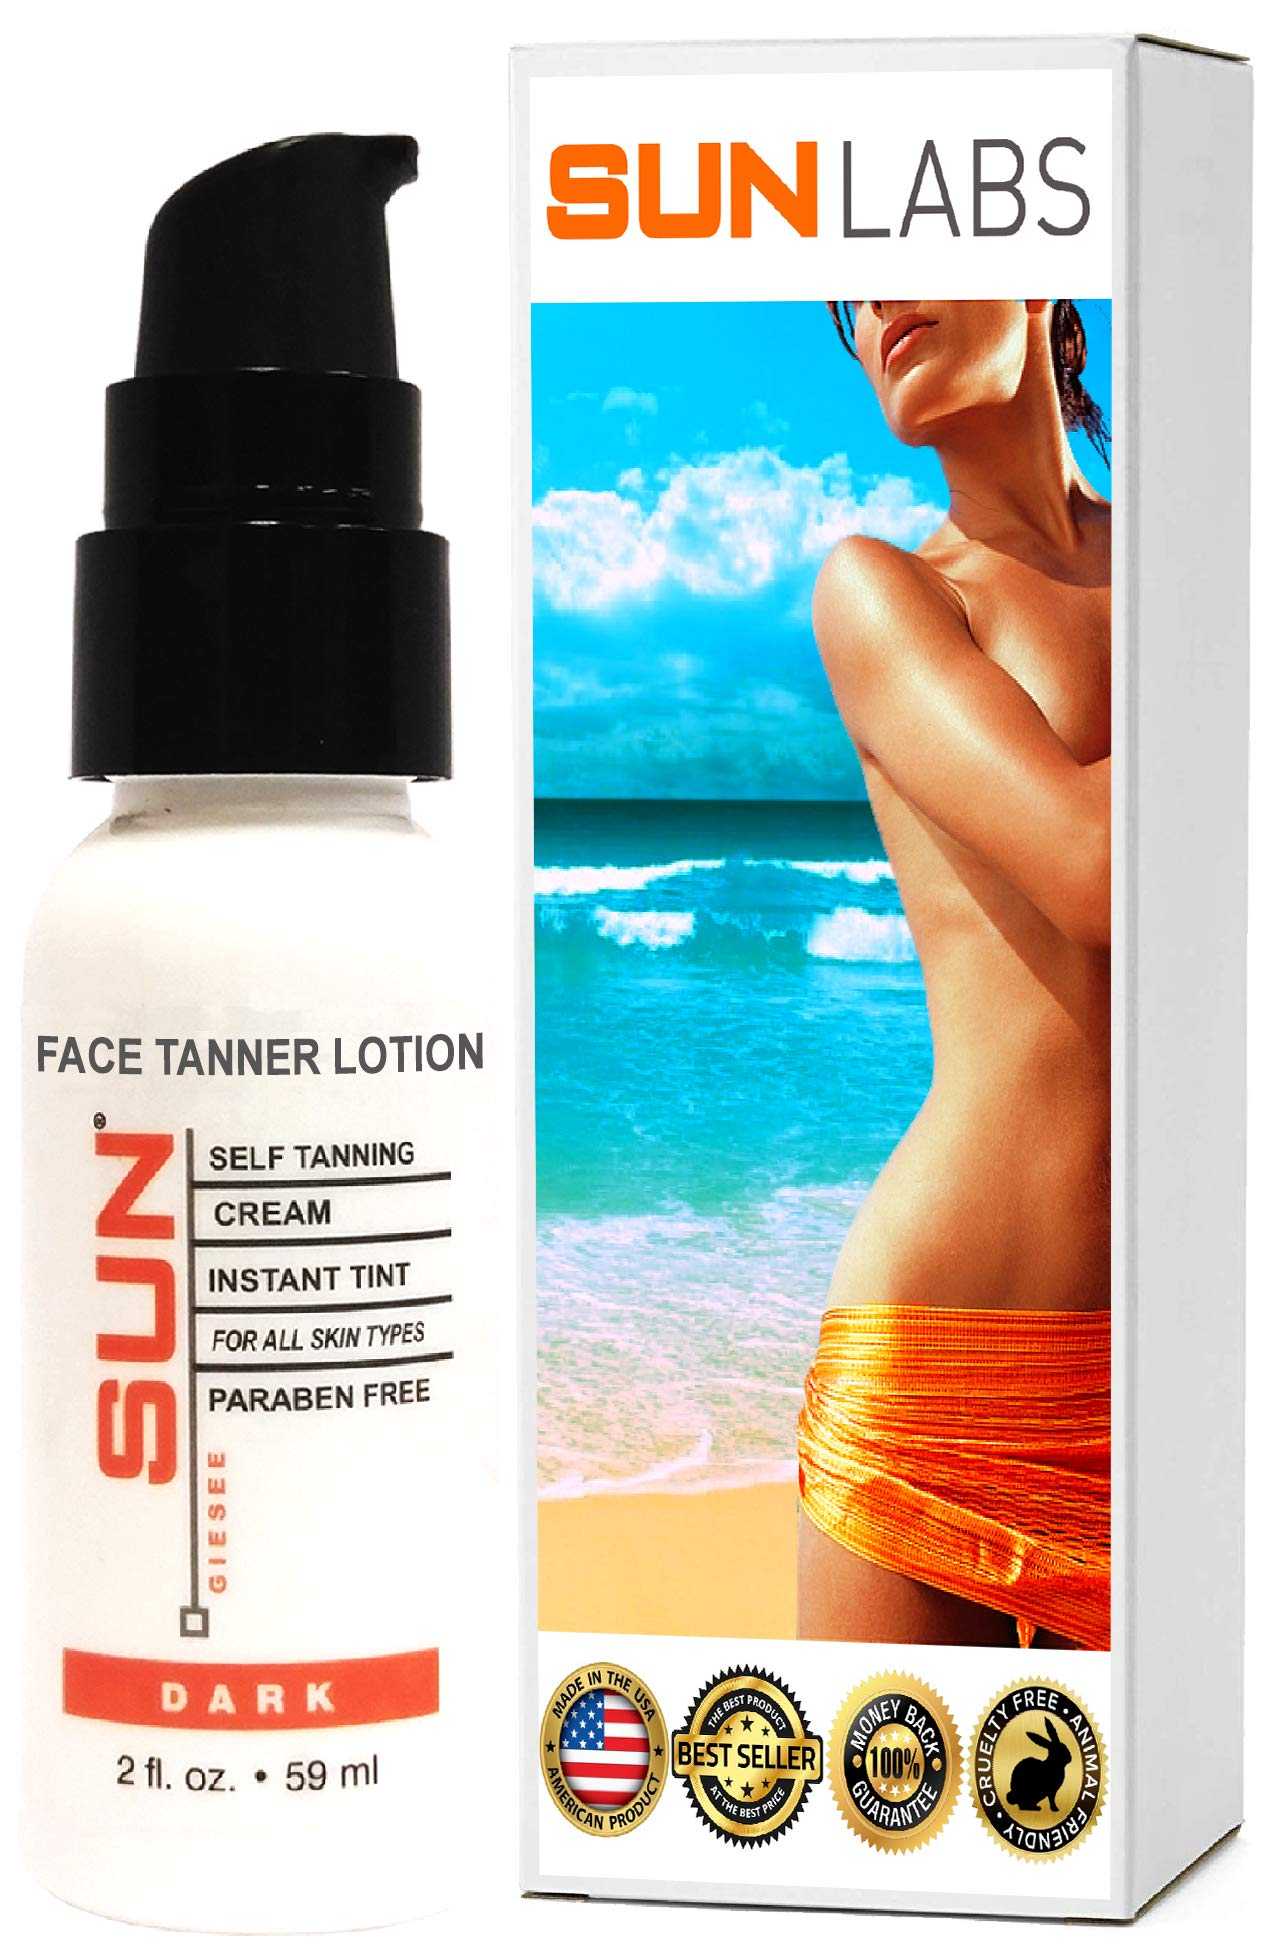 Face Tanner Travel Size Self Tanner Moisturizer for Face 2 oz Face Serum Tanning Lotion Face moisturizer Indoor Tanning lotion by Sun Laboratories